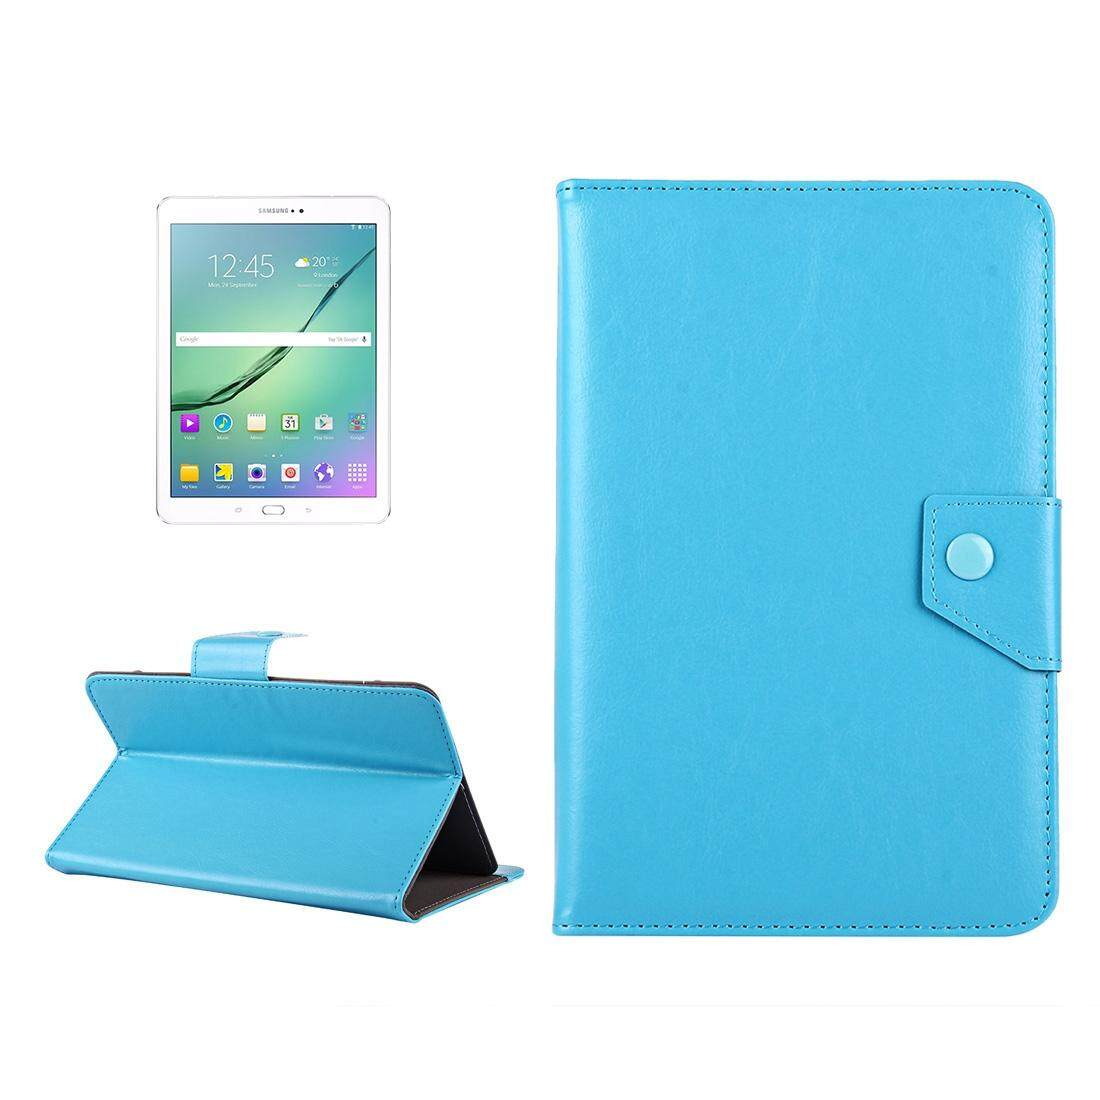 10 inch Tablets Leather Case Crazy Horse Texture Protective Case Shell with Holder for Asus ZenPad 10 Z300C, Huawei MediaPad M2 10.0-A01W, Cube IWORK10(Baby Blue) - intl